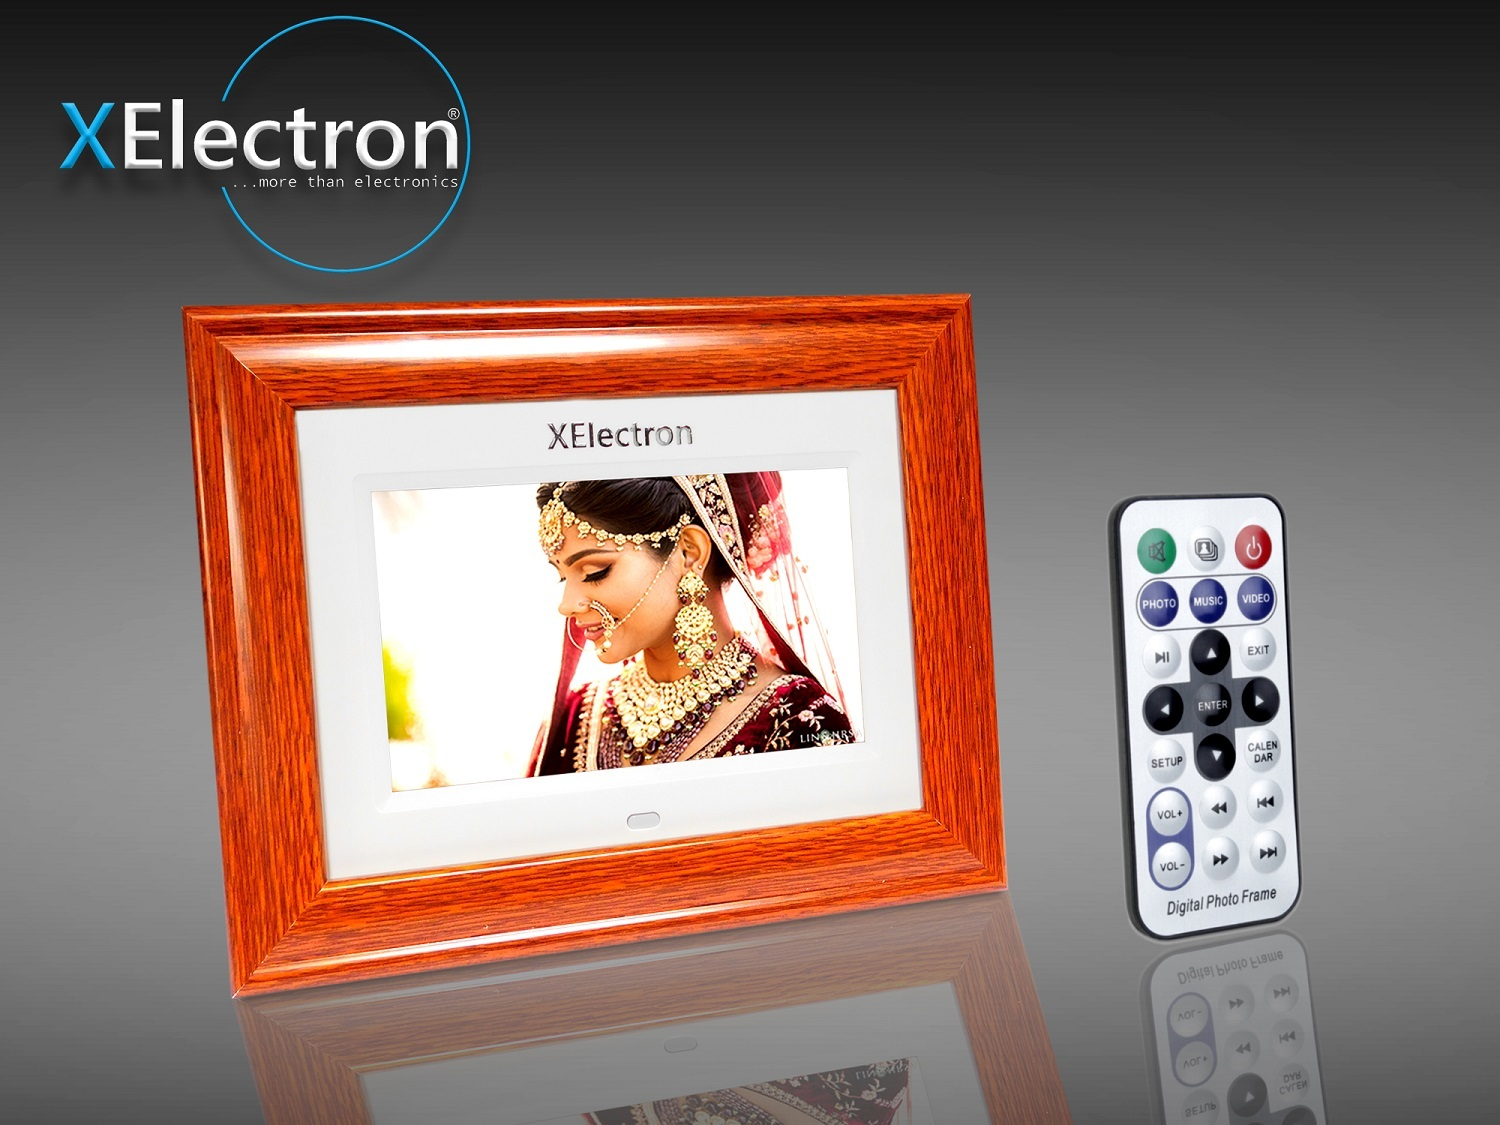 XElectron 7 inch LCD Display Wooden Digital Photo Frame